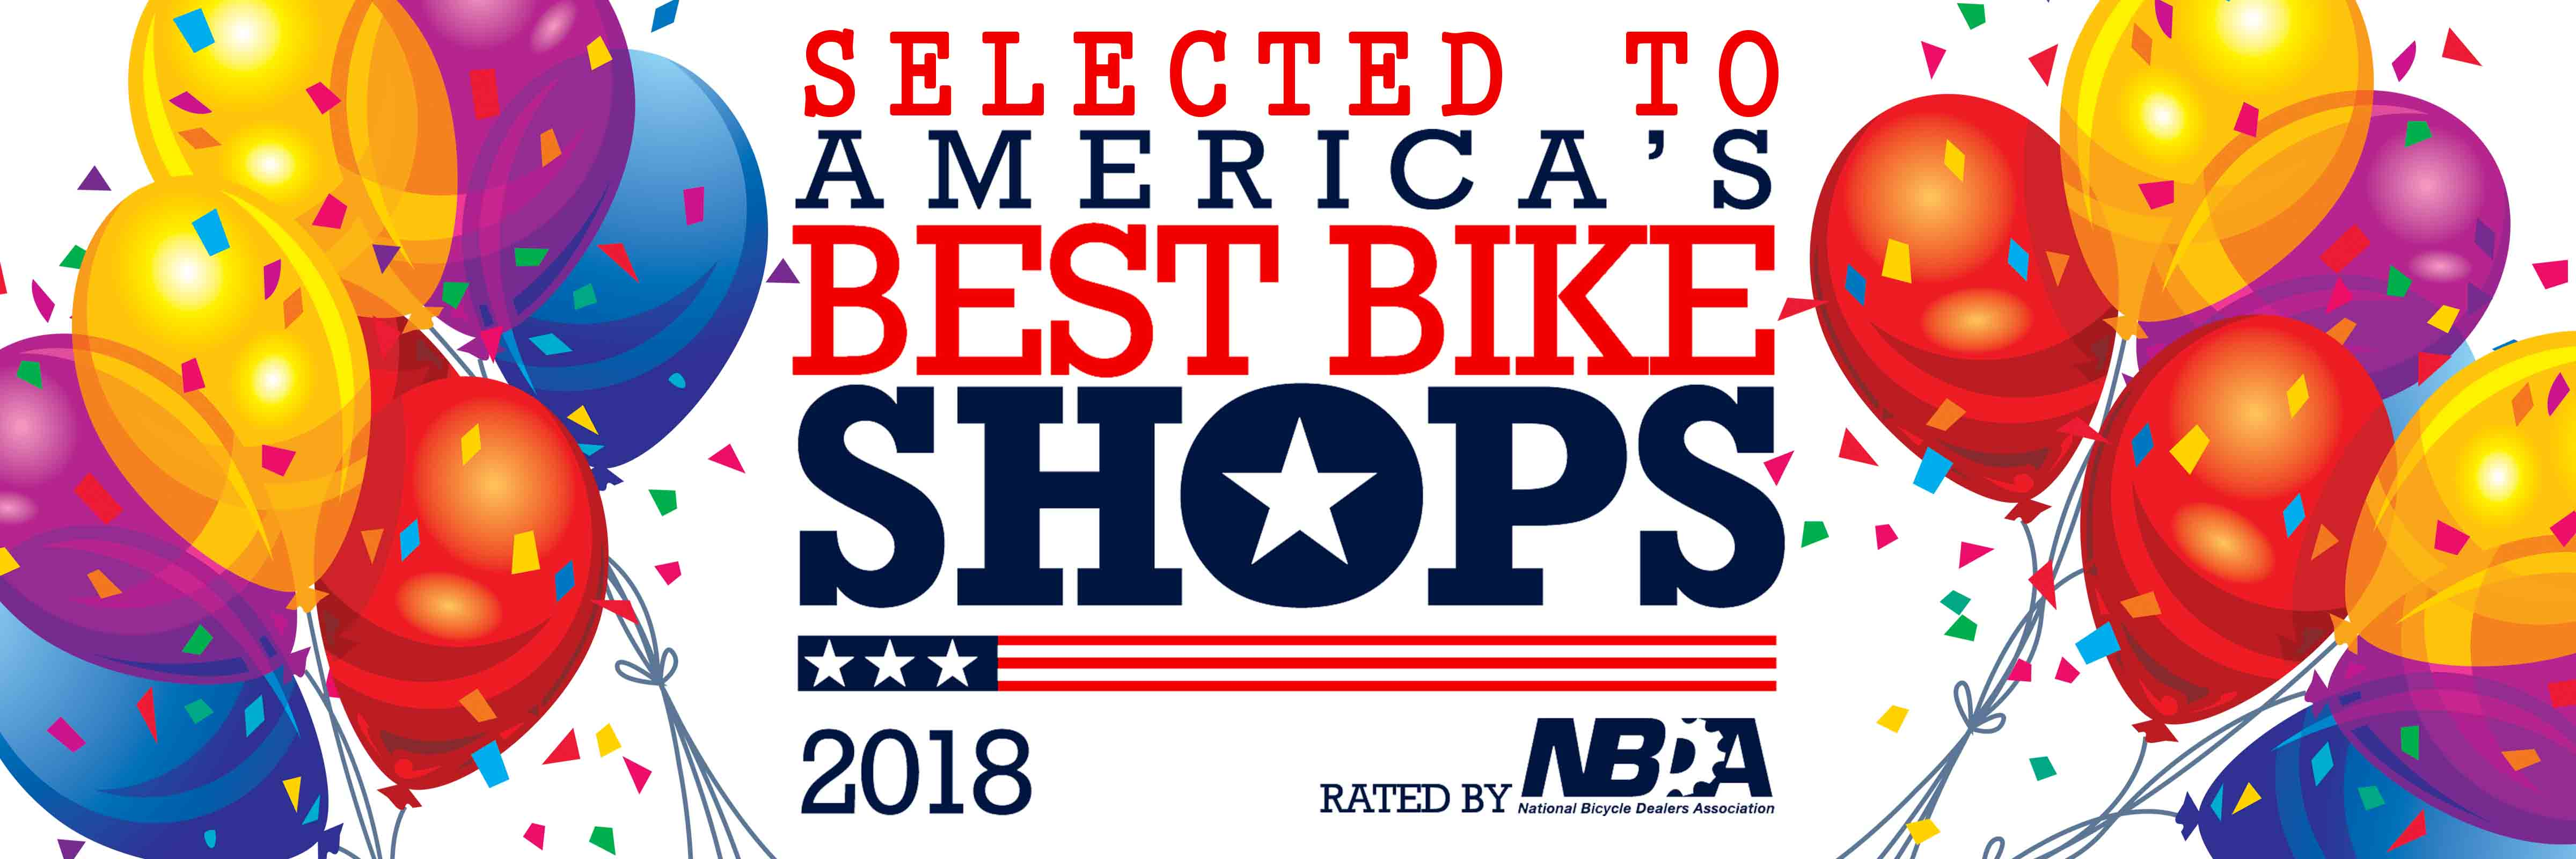 America's Best Bike Shops Recipient